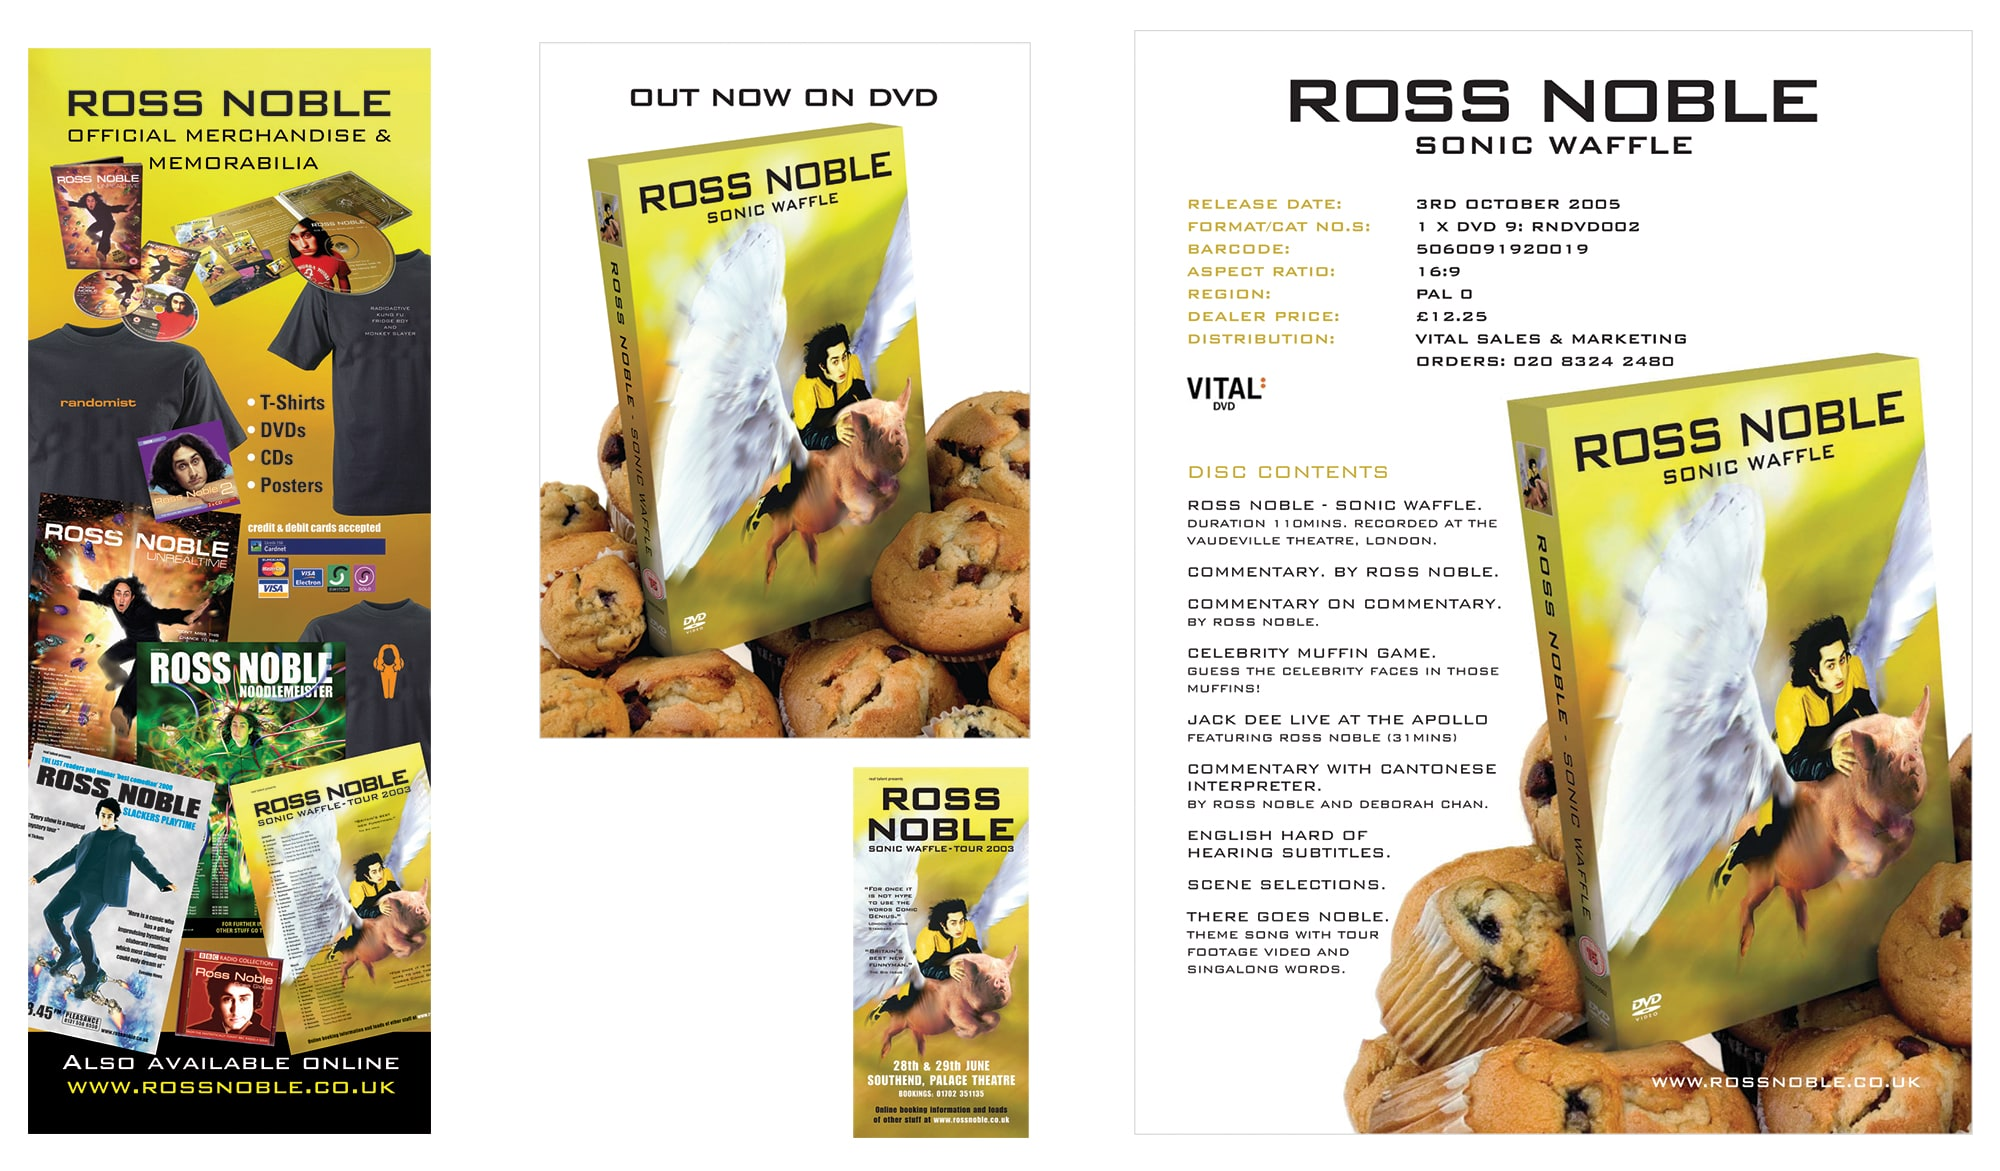 Ross Noble - Sonic Waffle DVD - advertising